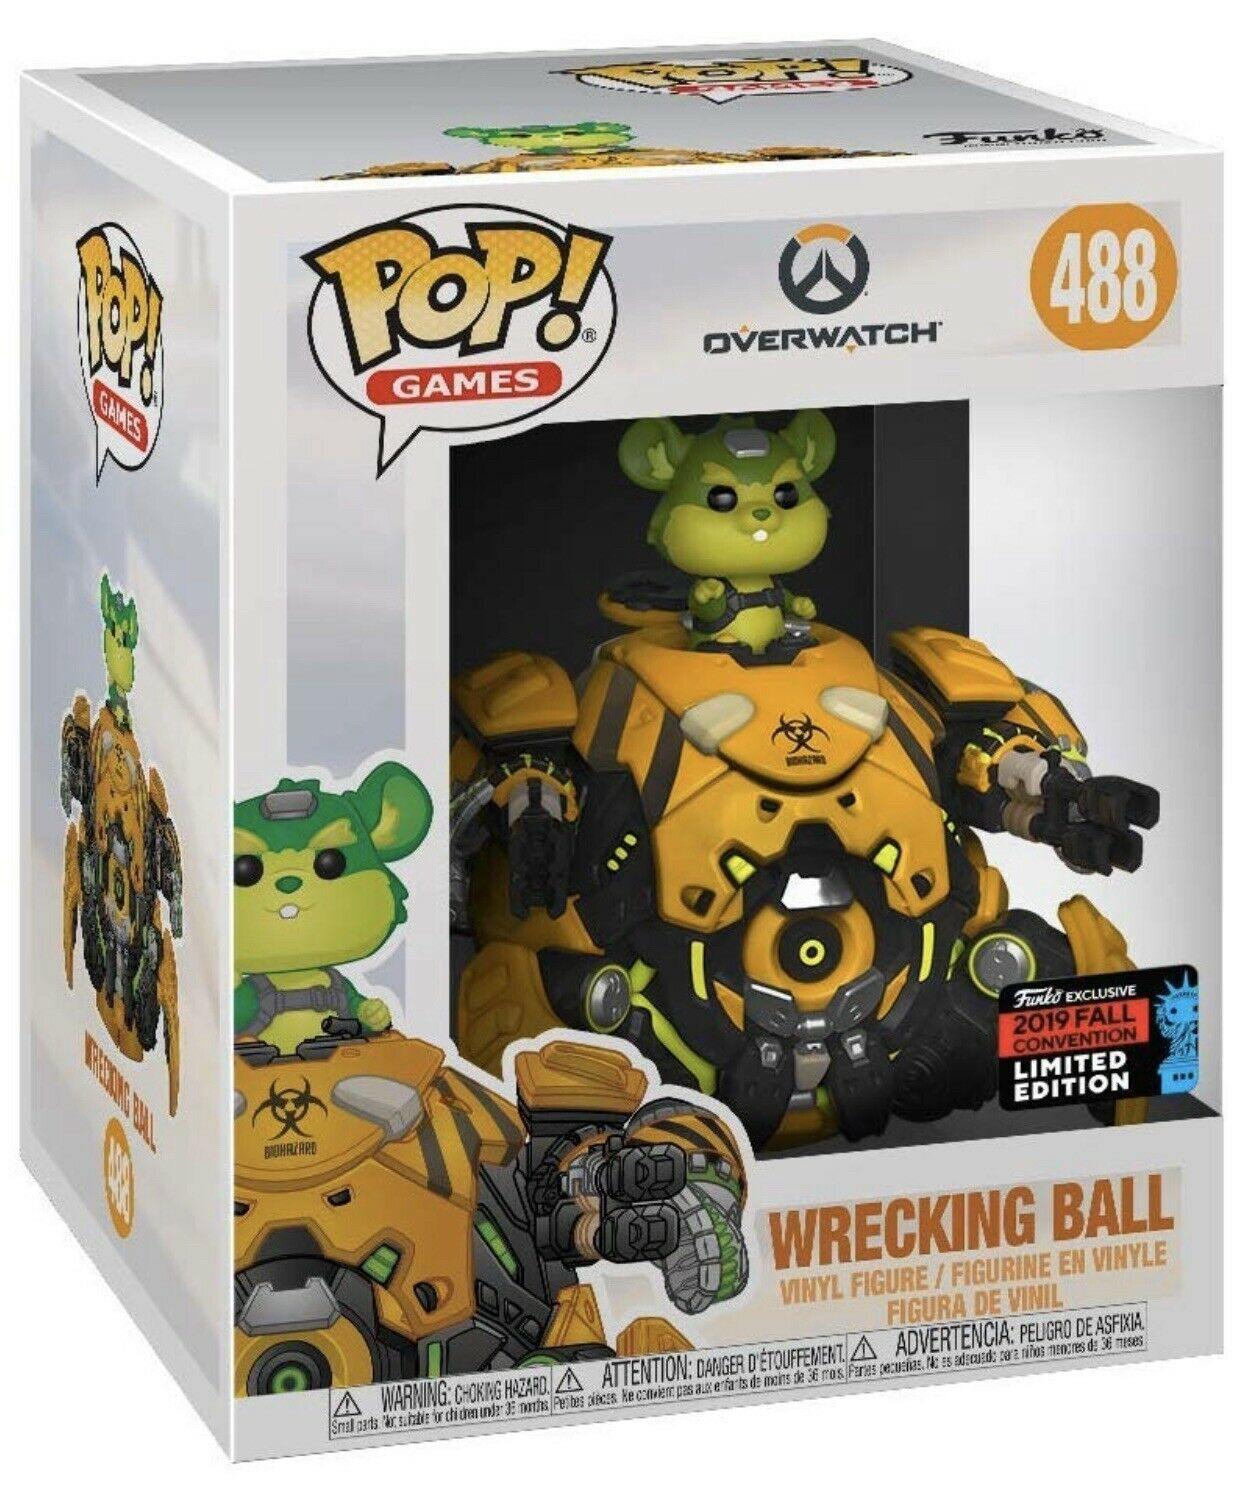 """Overwatch - Toxic Wrecking Ball 6"""" Super Sized Pop! Vinyl Figure (2019 Fall Convention Exclusive)"""